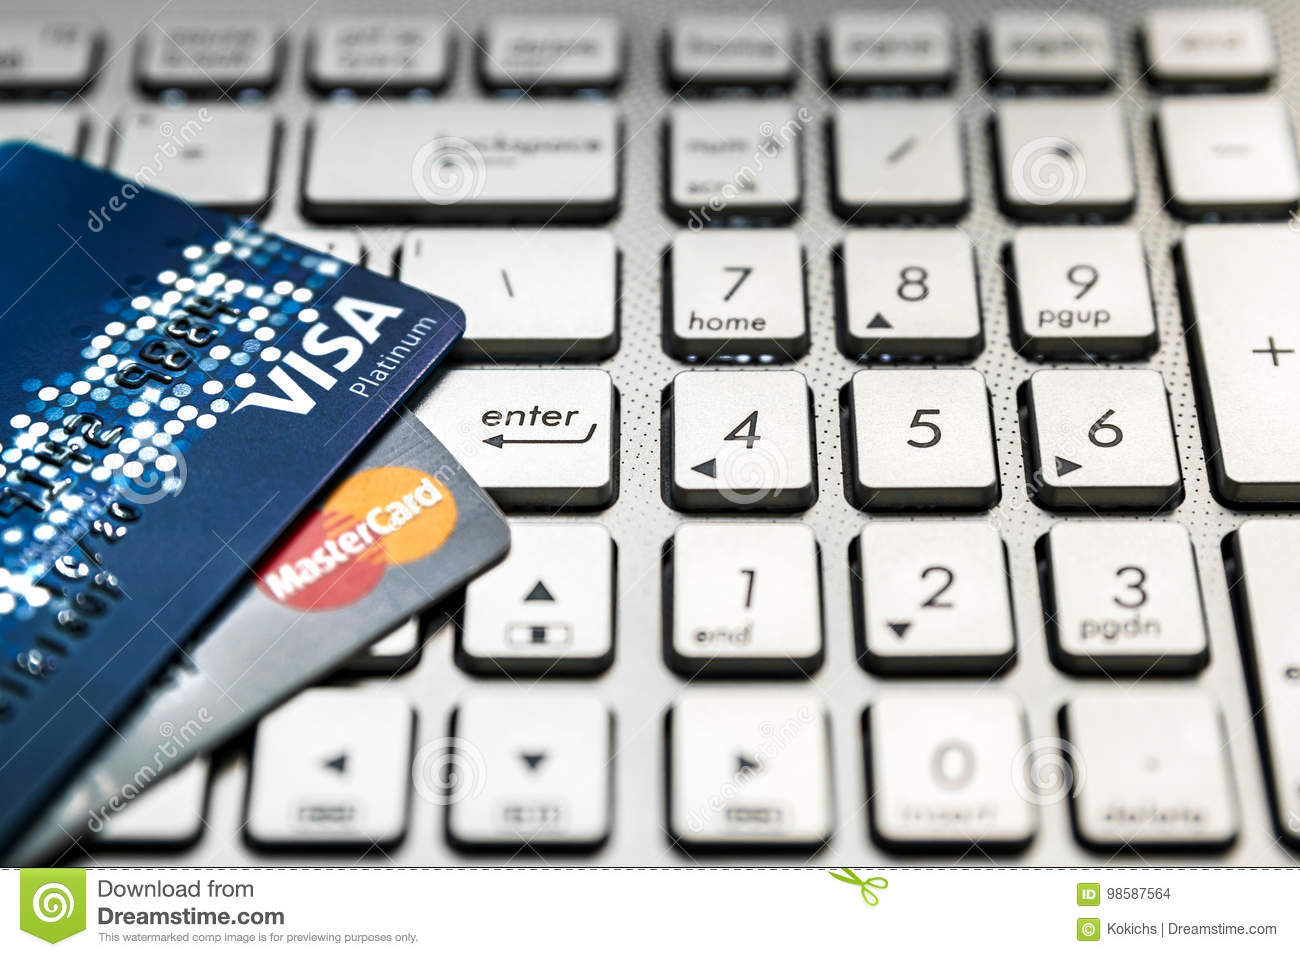 Bangkok, Thailand - August 24, 2017: Close up shot of 2 credit cards VISA and Mastercard on laptop computer with enter button focu